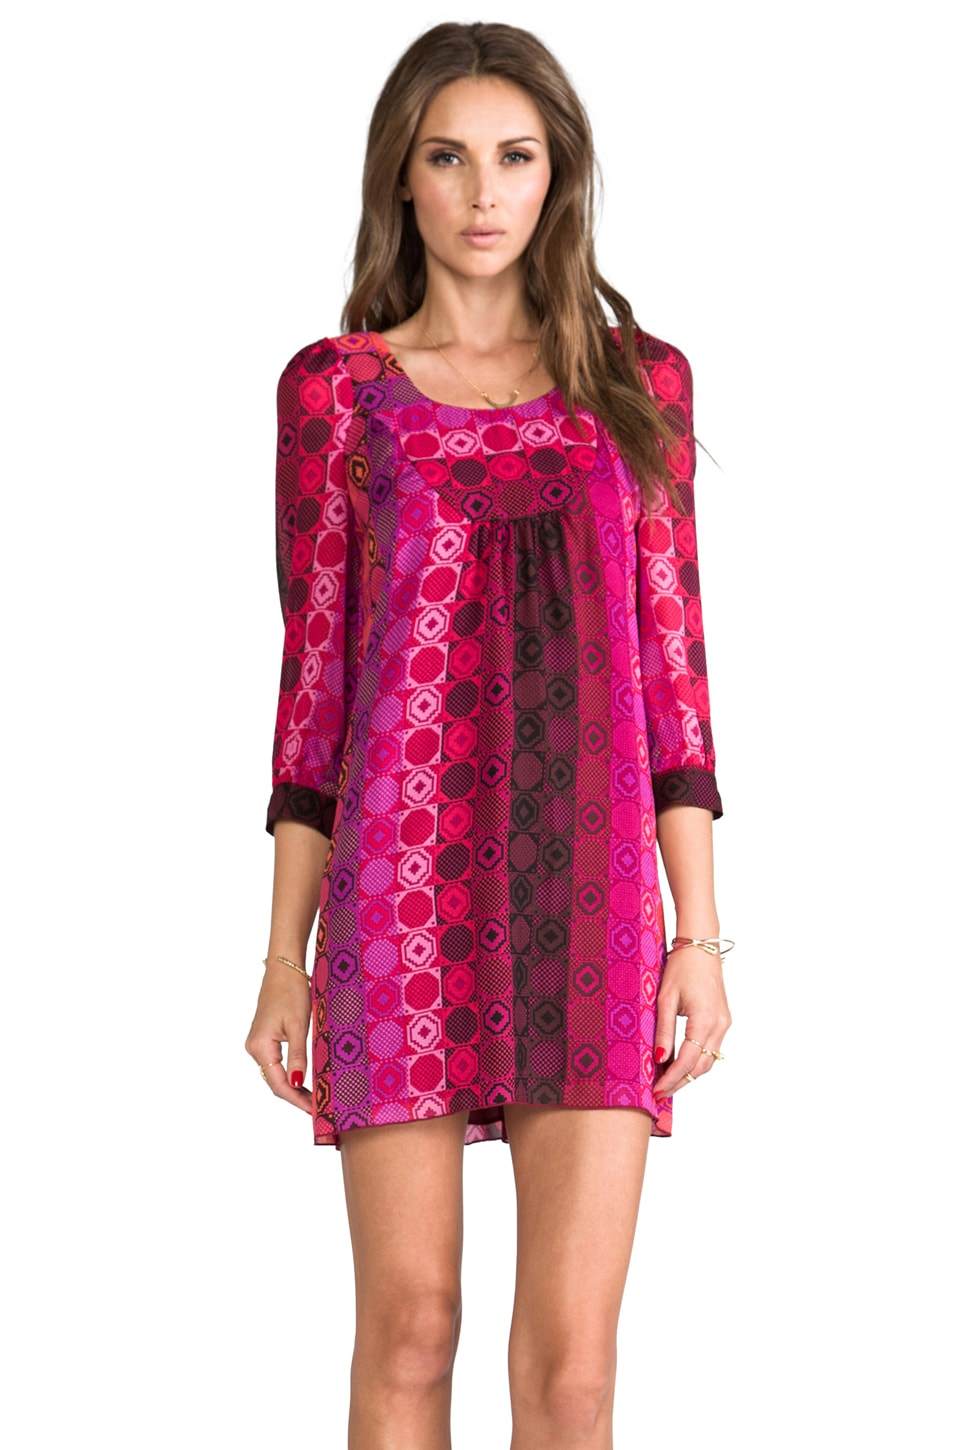 Anna Sui Geometric Tonal Print Mesh Crepe Dress in Fuchsia Multi